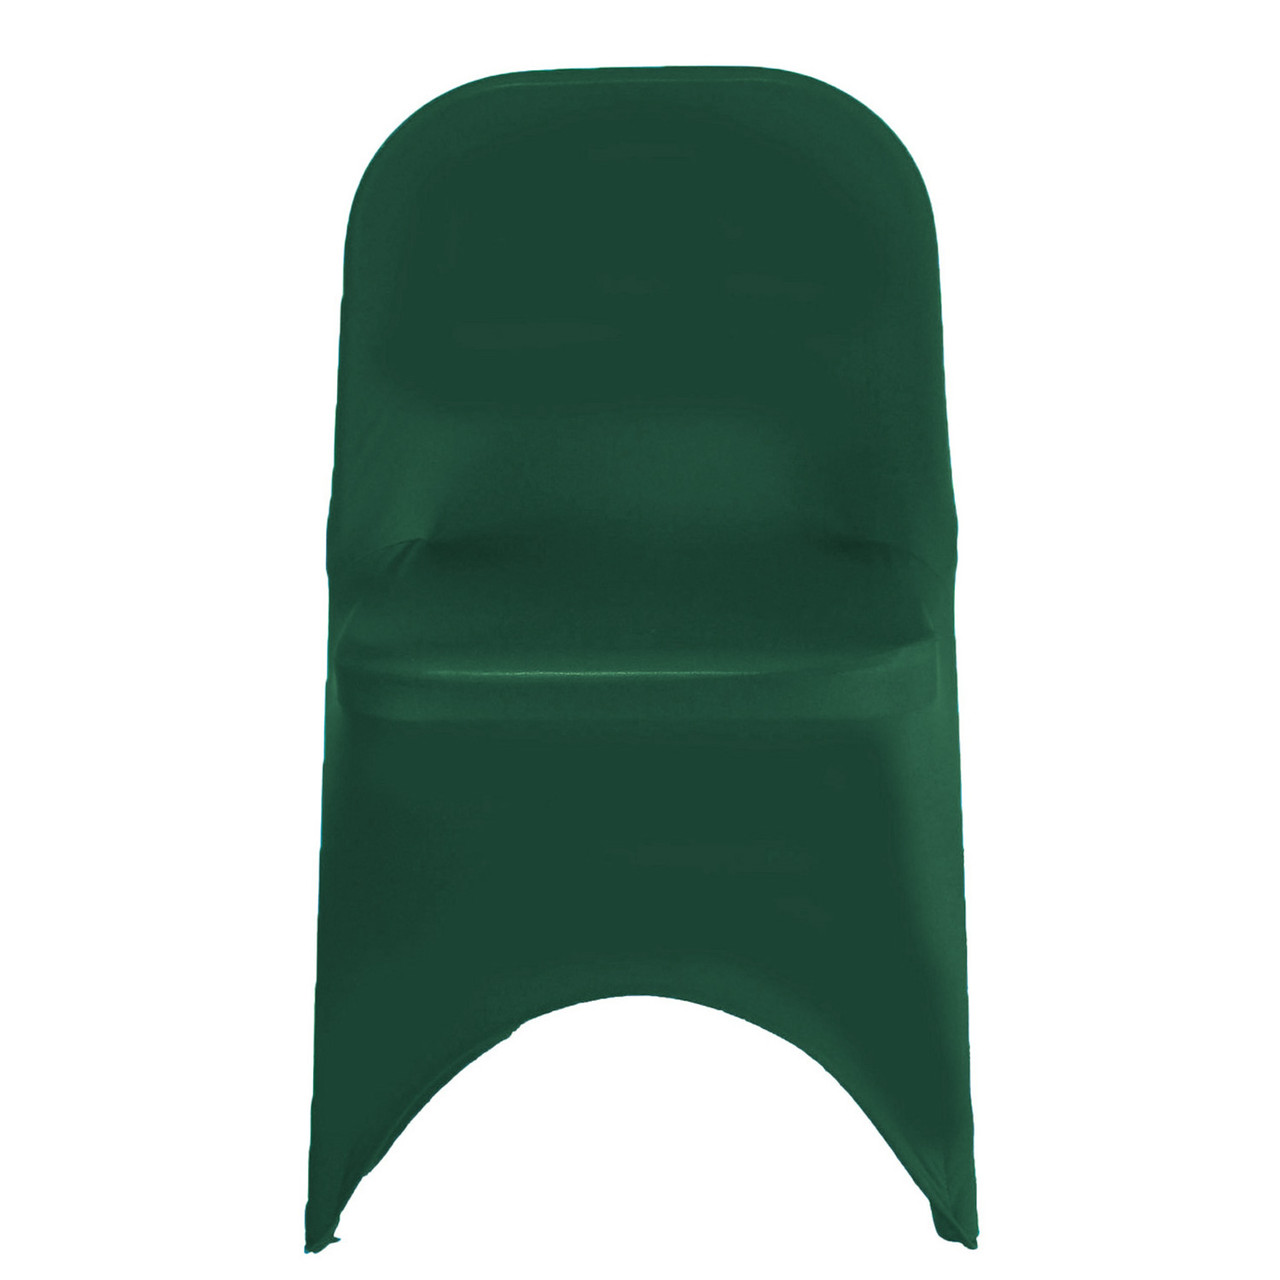 Astounding Stretch Spandex Folding Chair Cover Hunter Green Inzonedesignstudio Interior Chair Design Inzonedesignstudiocom